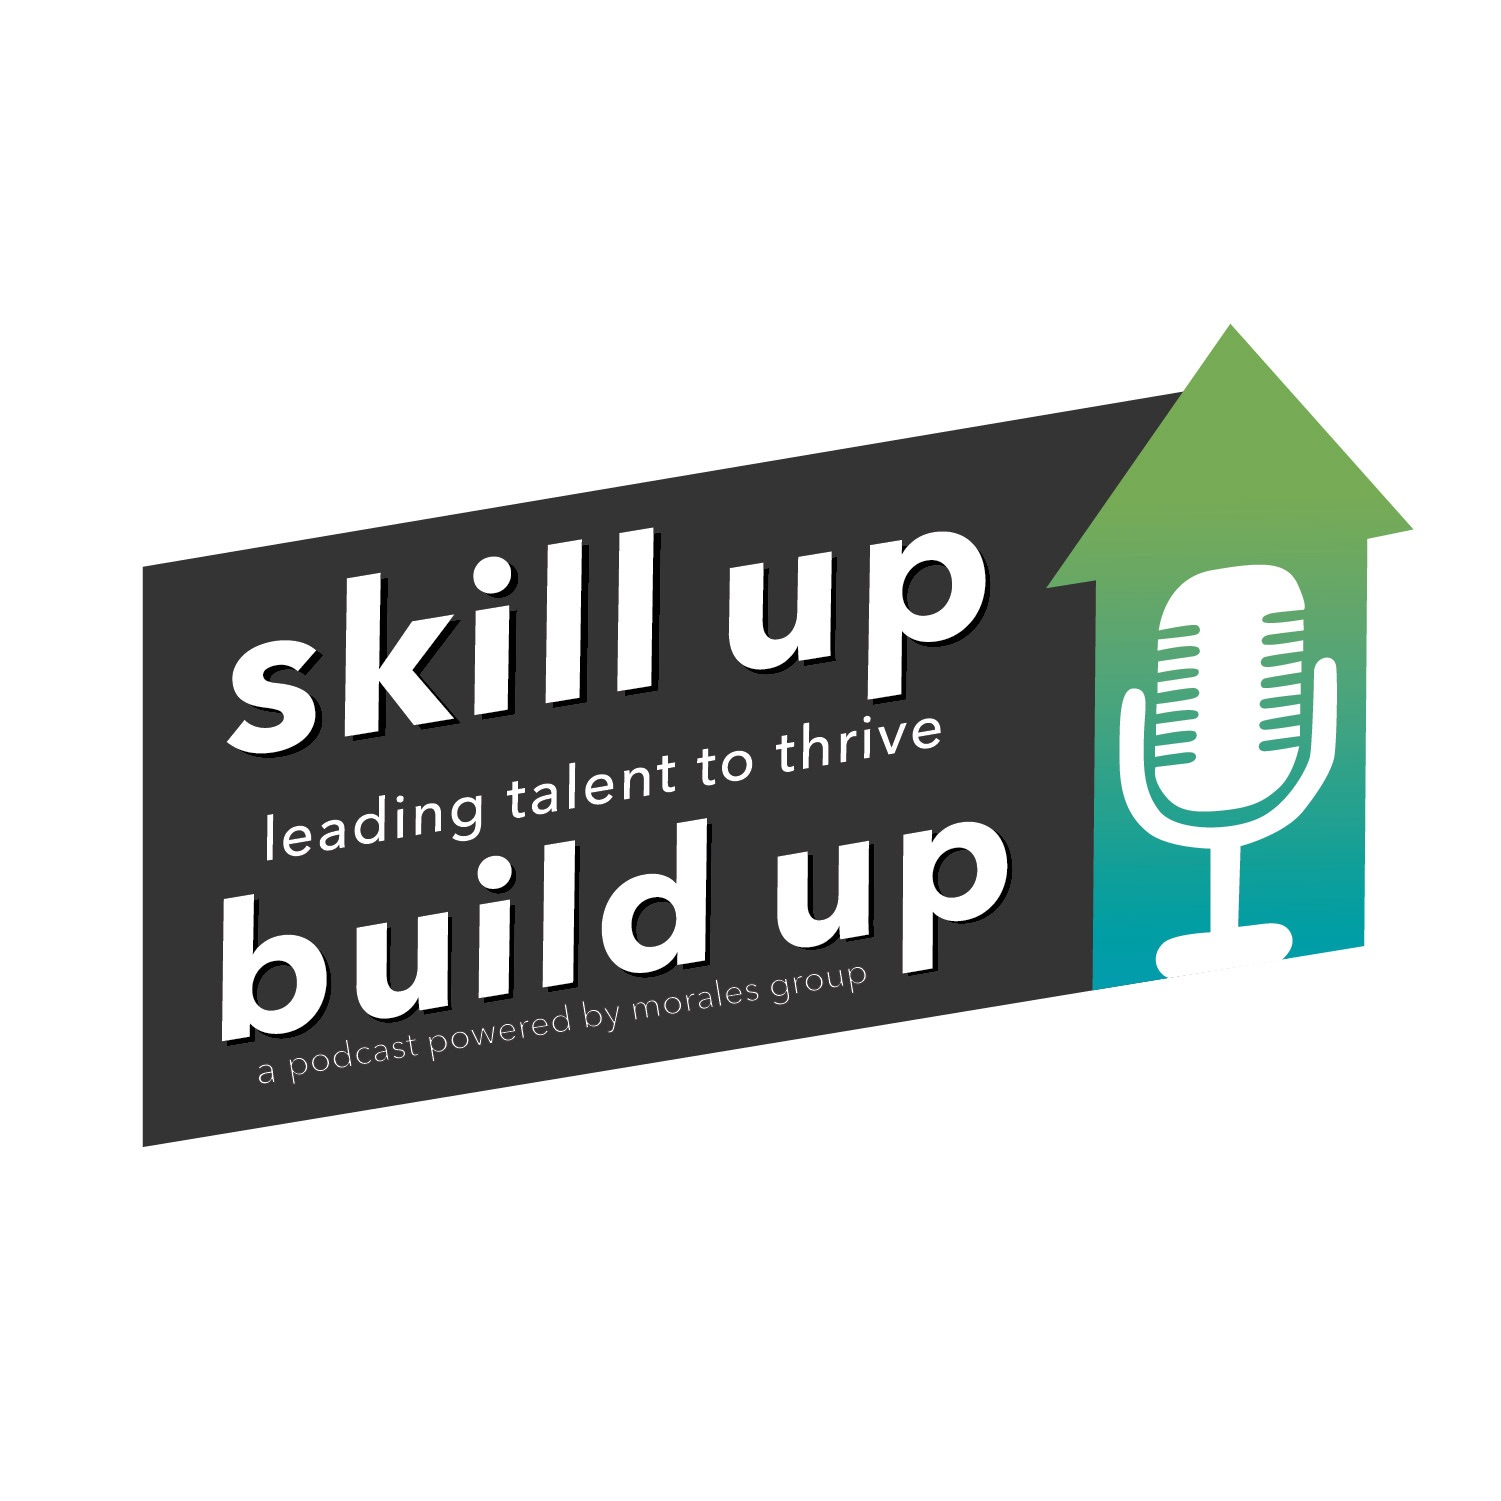 Episode 12: Closing the gap between the worlds of learning and work